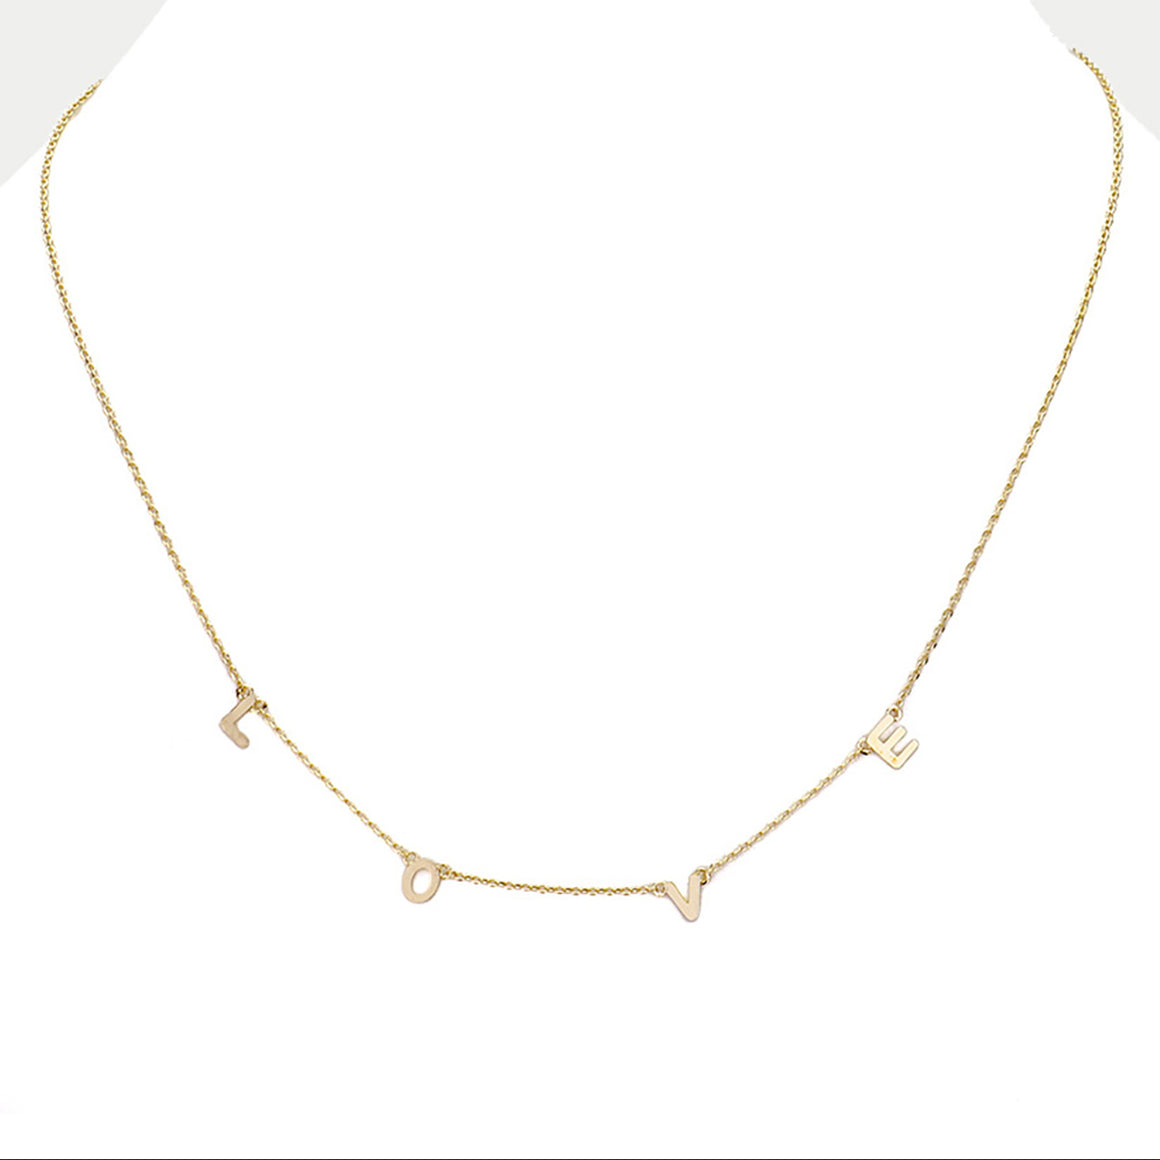 LOVE Necklace - Gold Plated